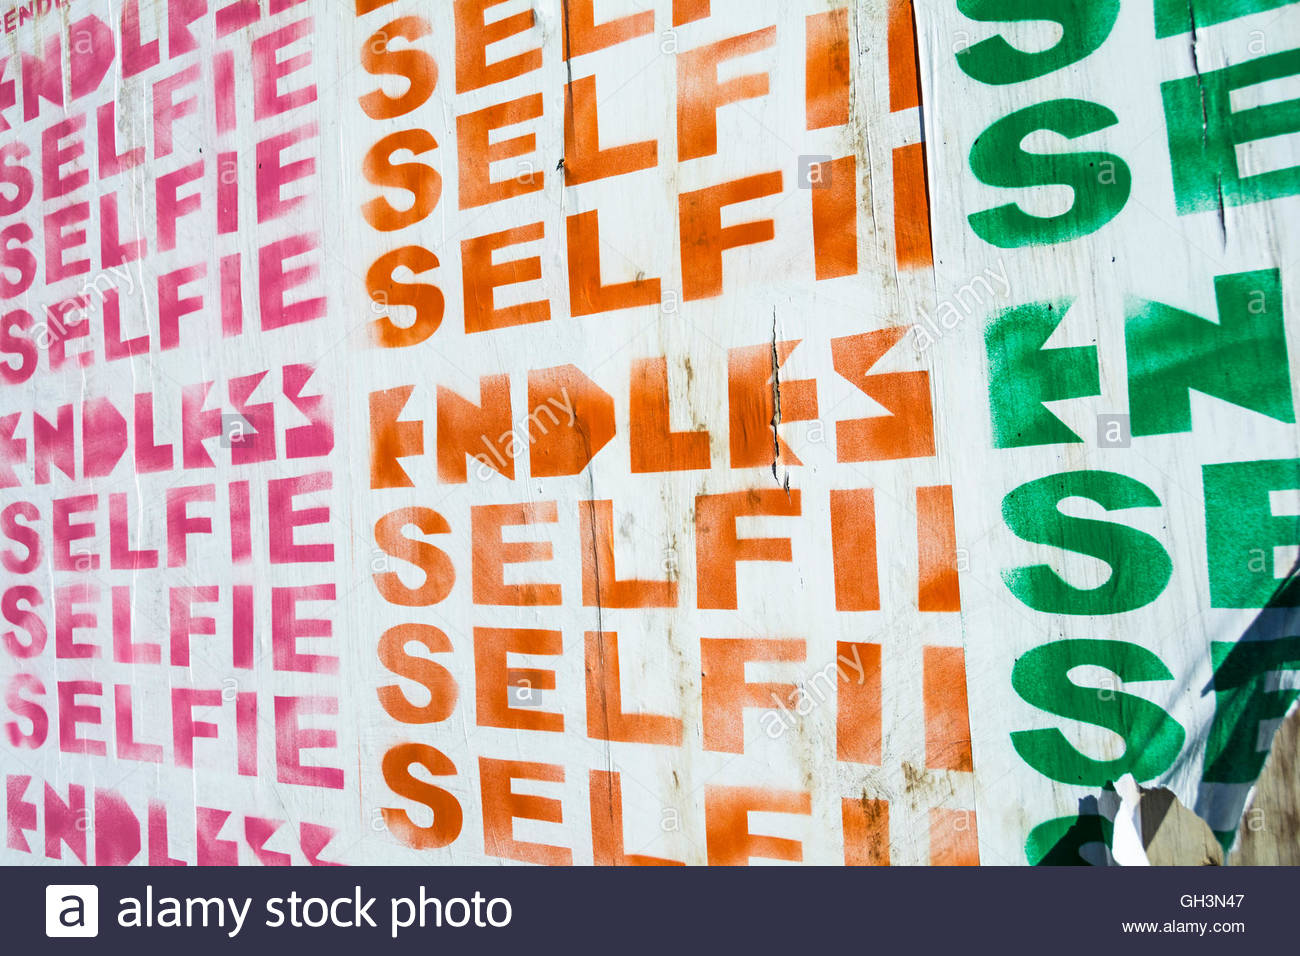 London, England, UK: Endless Selfies poster on a wall in Southwark, London, UK - Stock Image